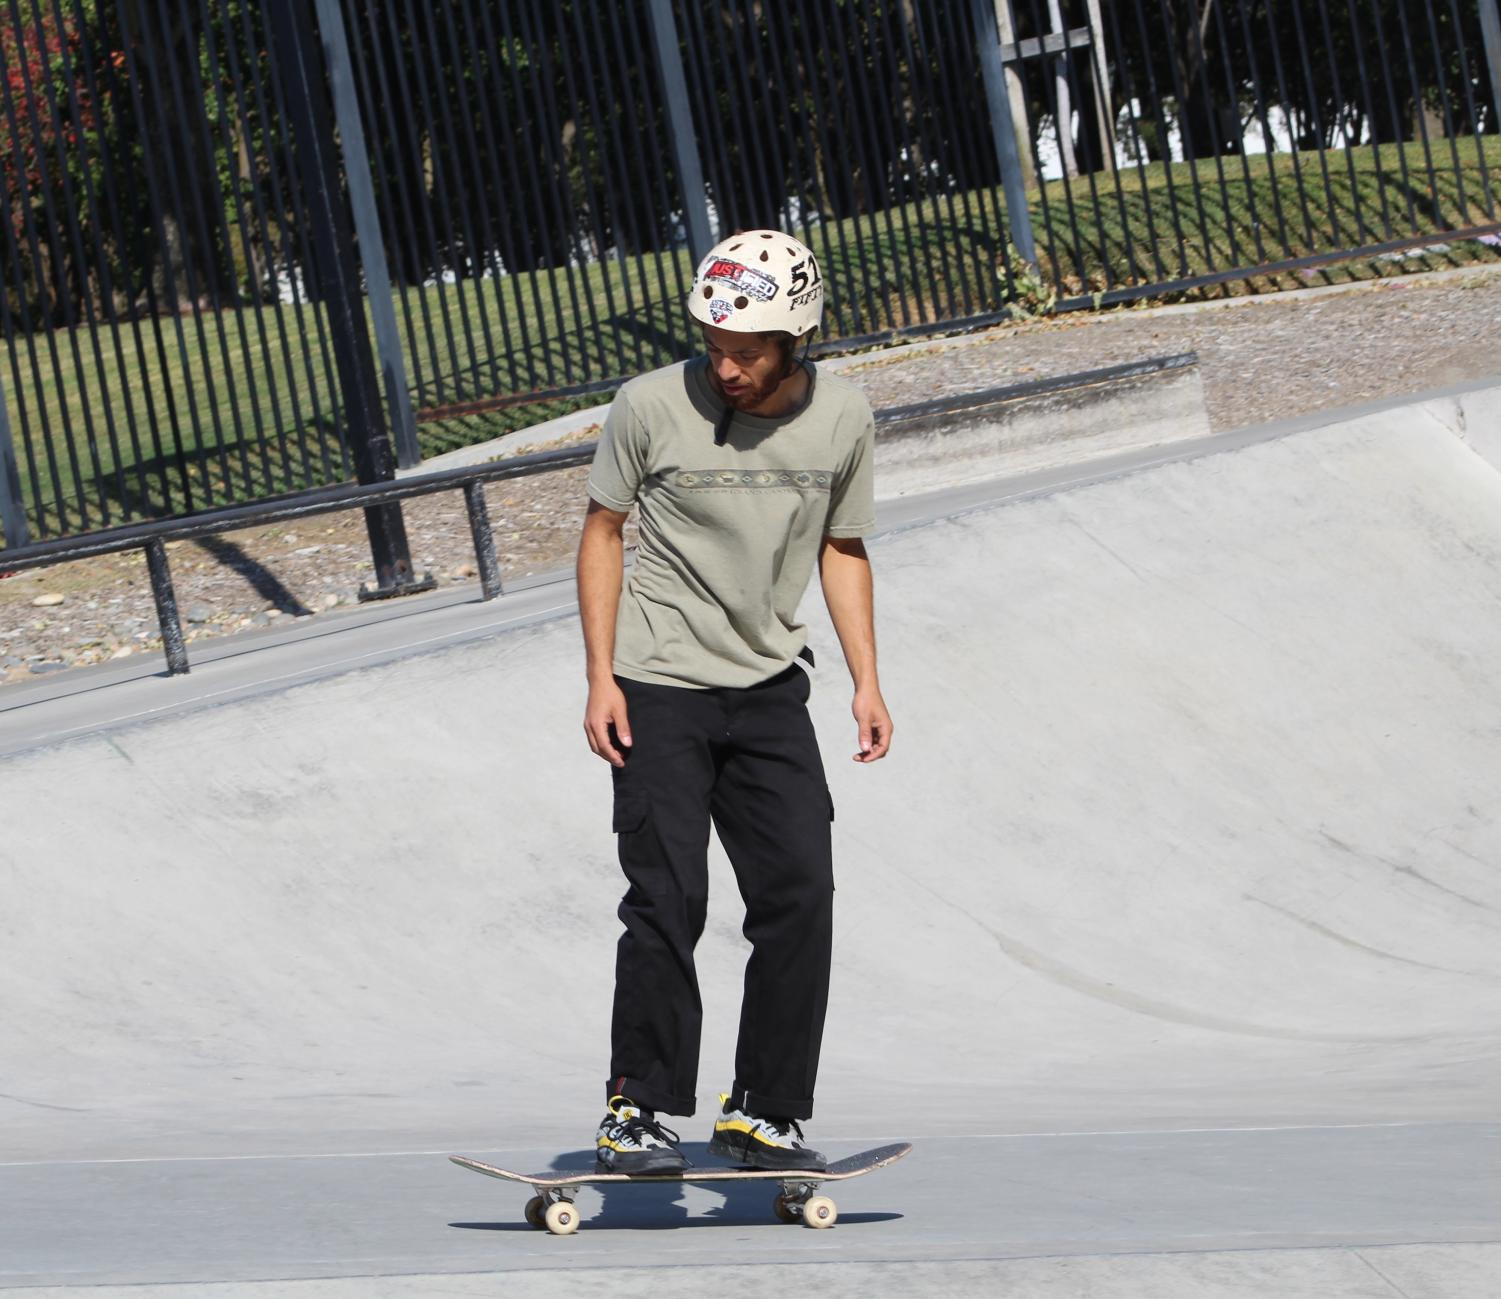 Rob Skate Academy coach provides lessons to young skateboarders at San Ramon Skate Park. The City of San Ramon celebrates its partnership with Rob Skate Academy at the skate park's 20th anniversary.